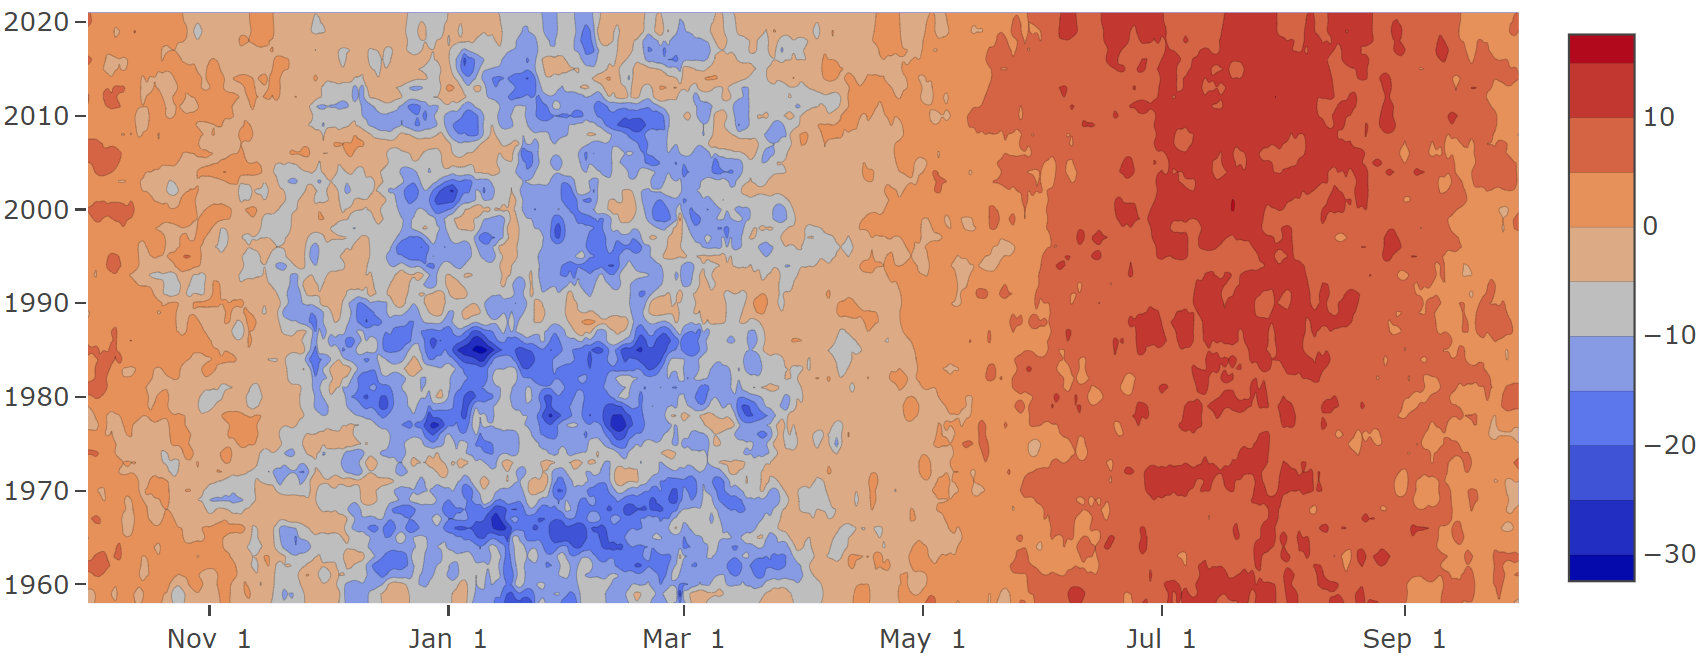 A chart showing what the seasonal temperature has been like in Ylistaro over the years